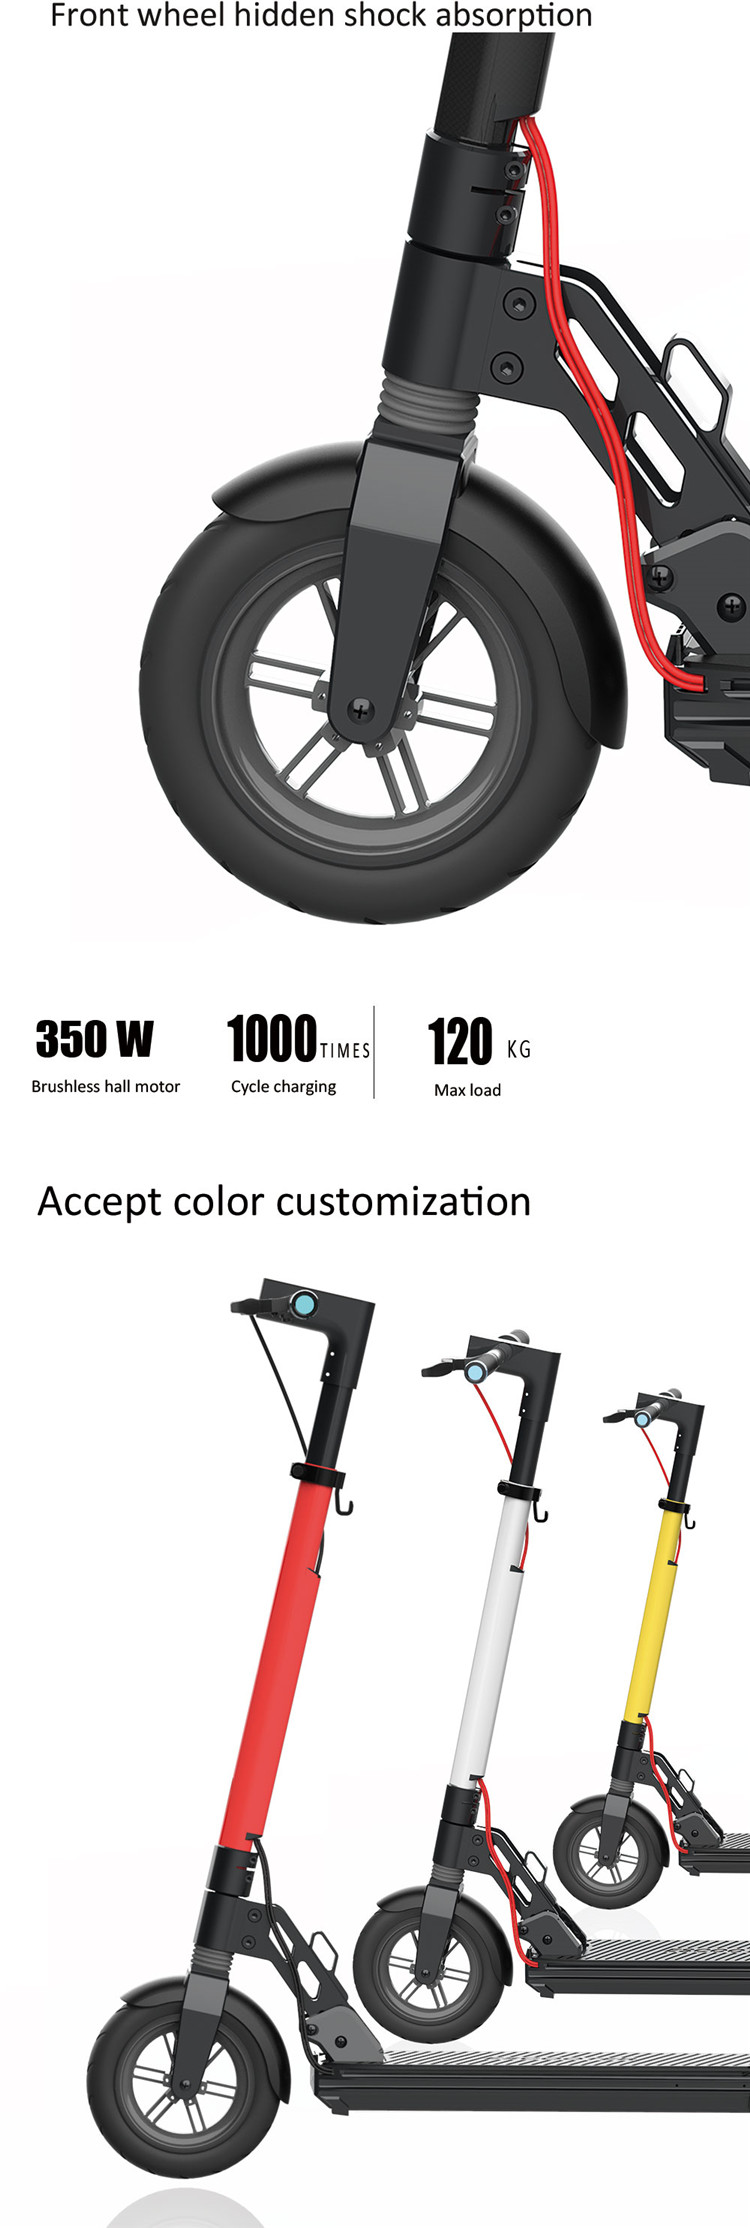 OEM/ODM Accepted Fantastic Battery Removable Fitrider Electric Kick Scooter with GPS 4G Communication module  For Shared scooter